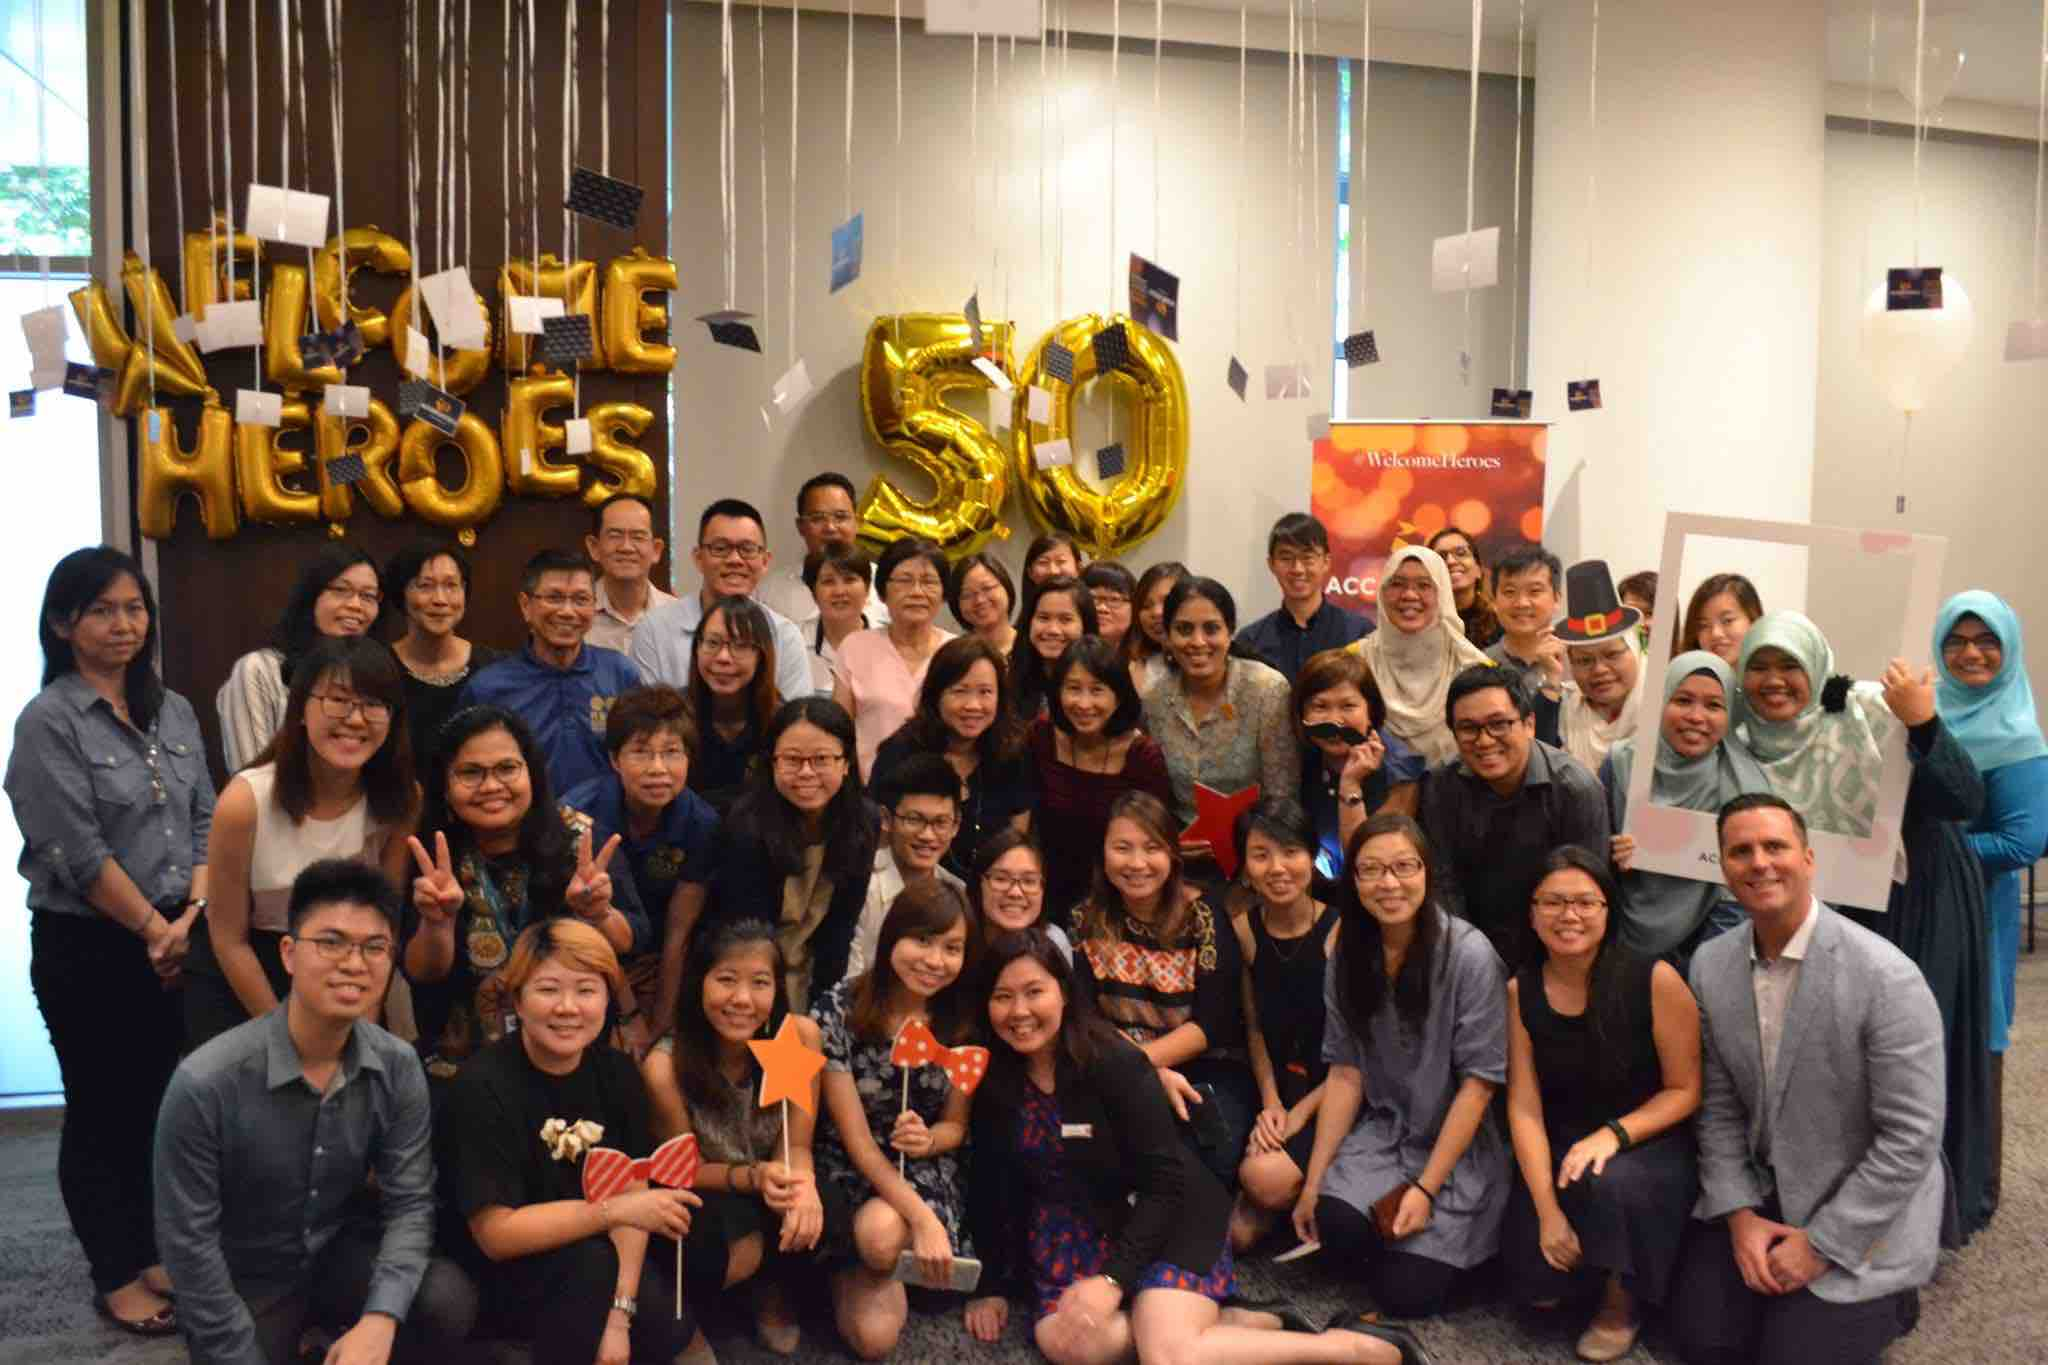 Accorhotels Singapore 50th Anniversary Celebrates Everyday